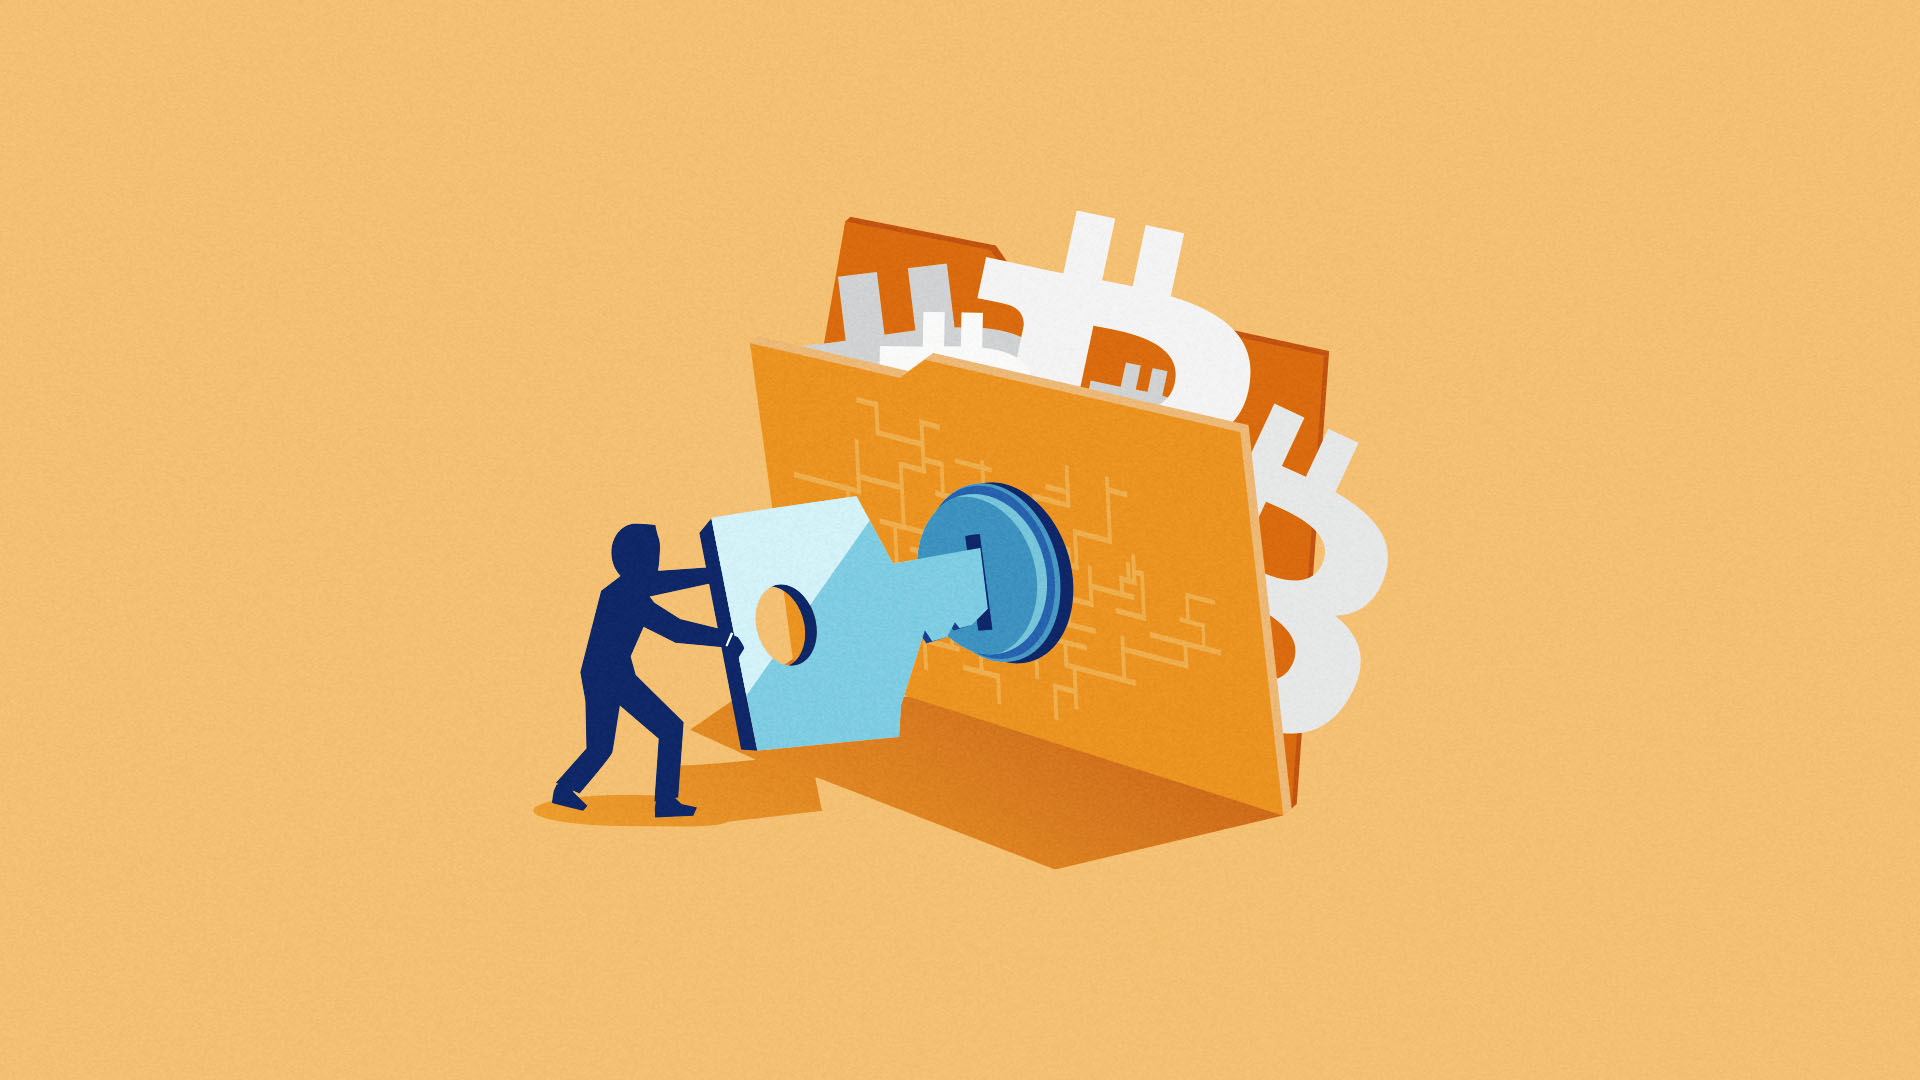 A person using a large key to lock a file containing Bitcoin logos